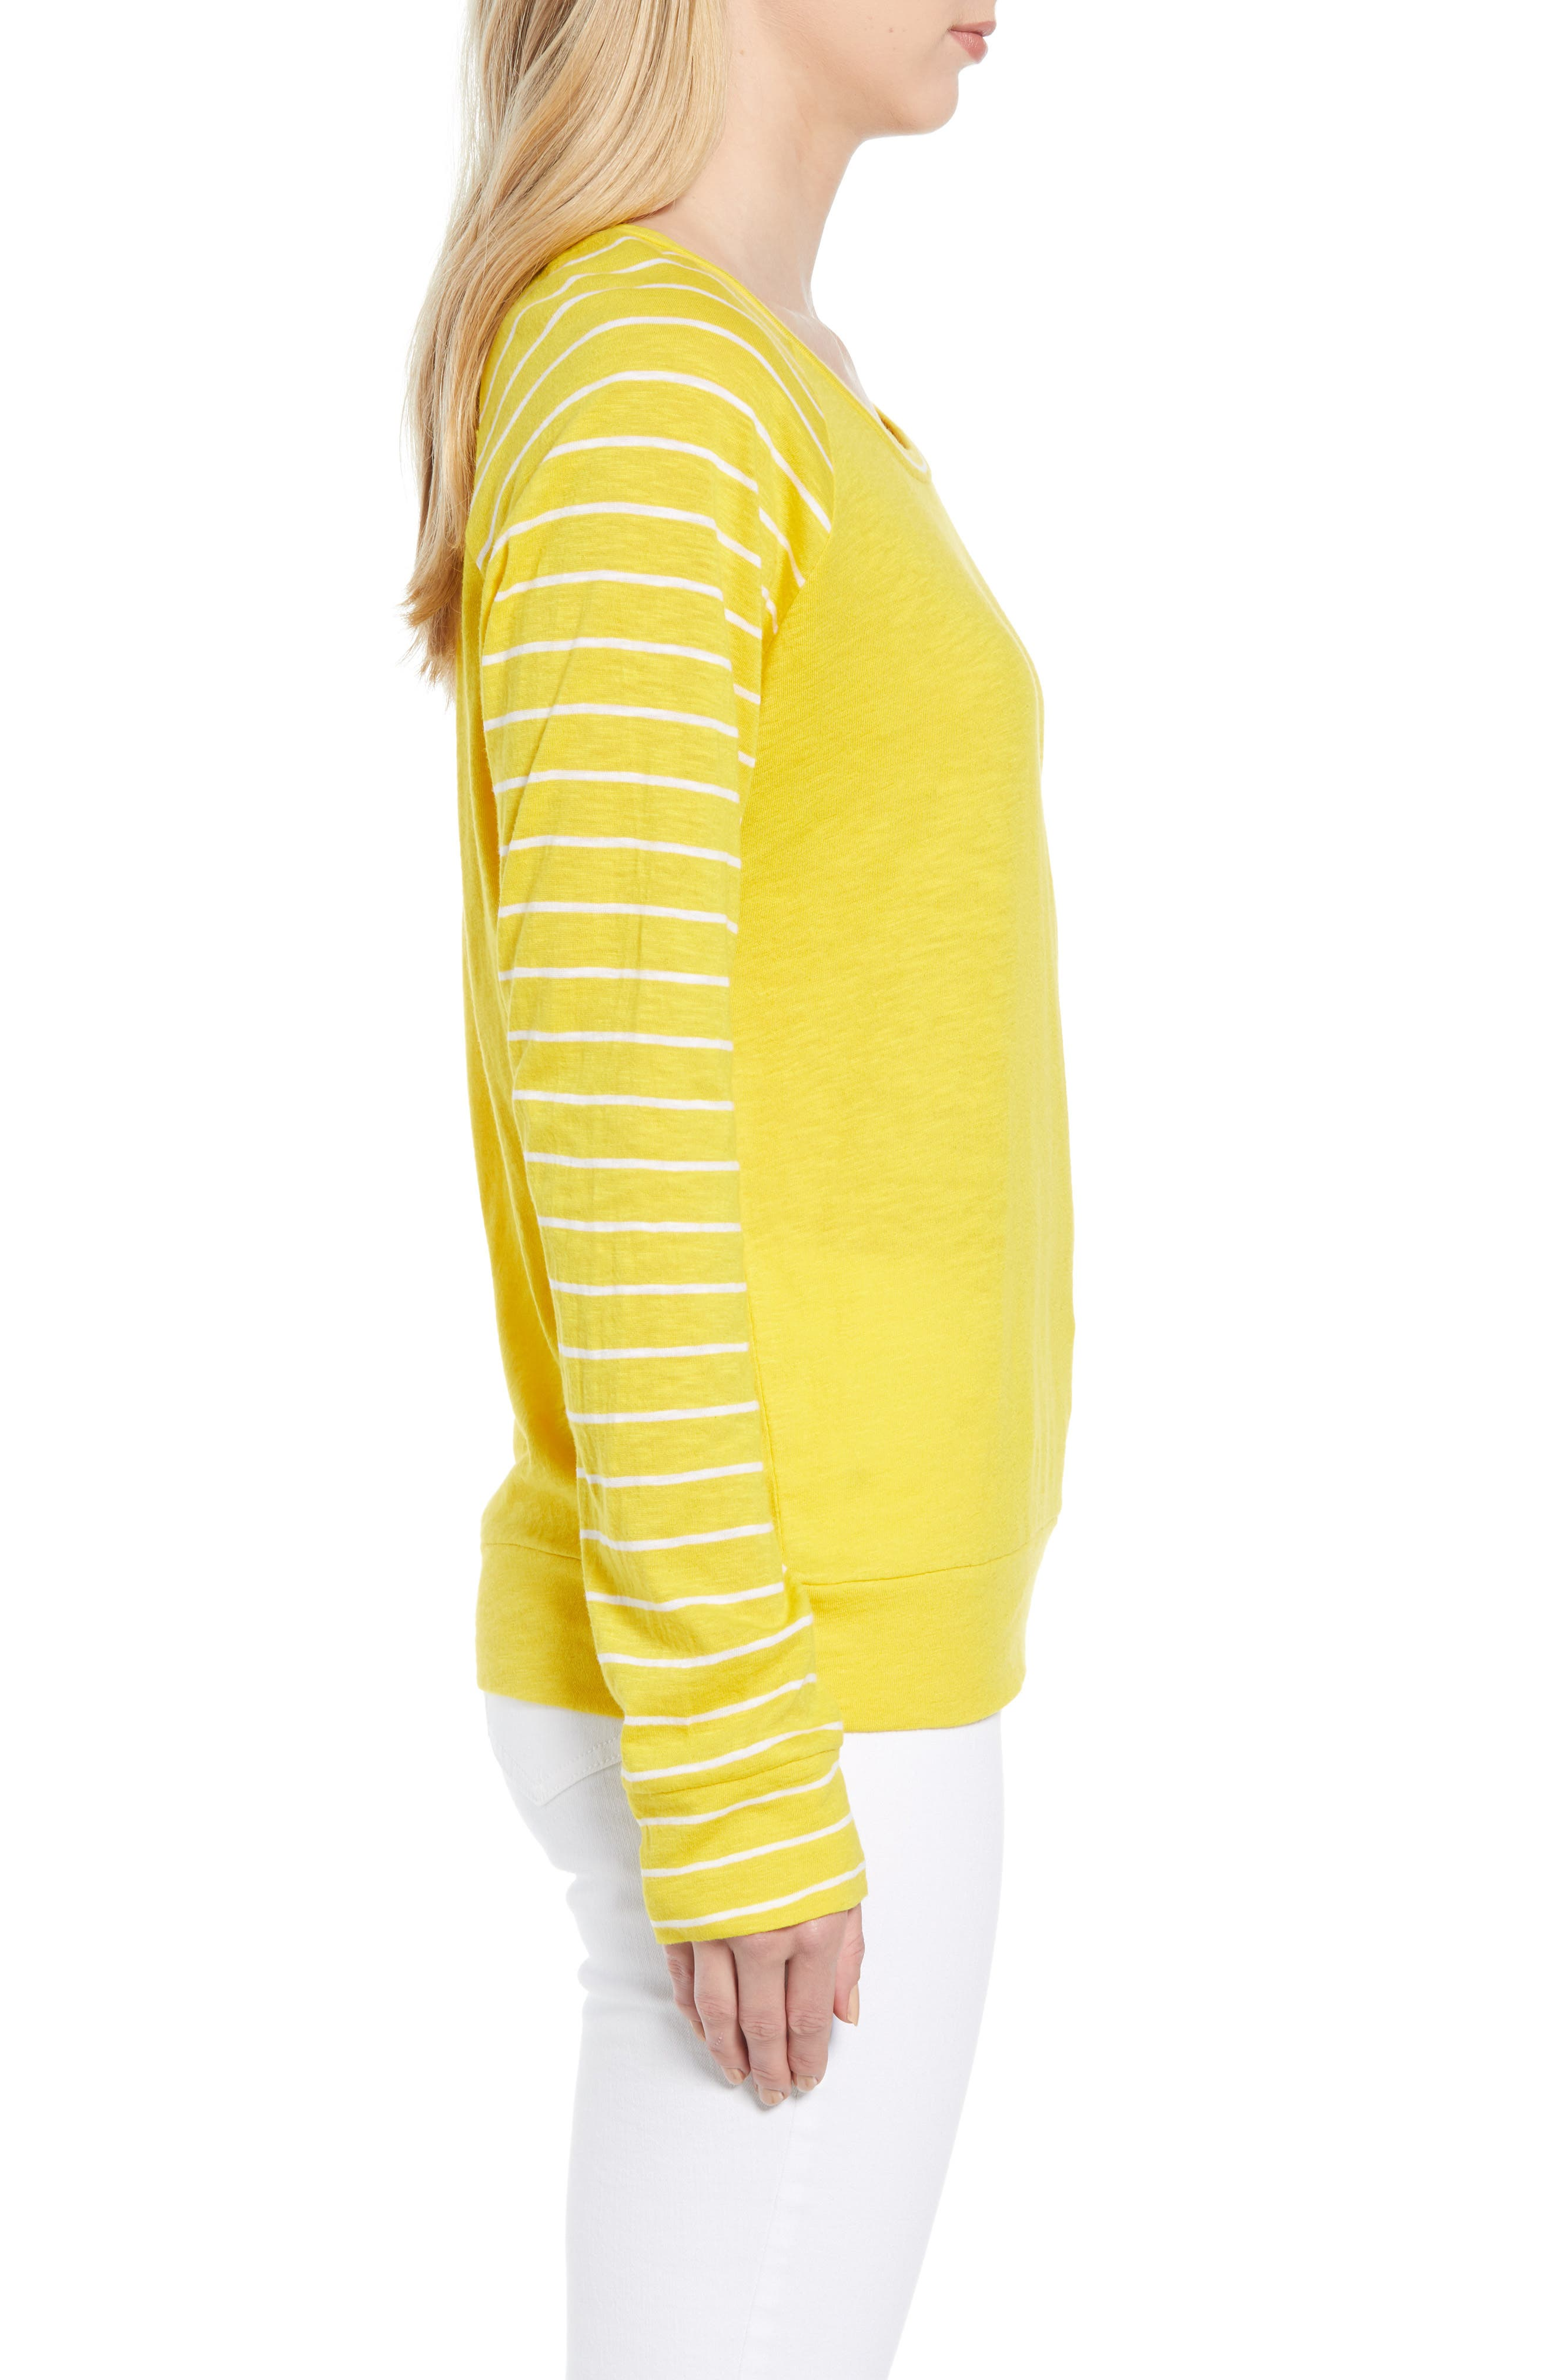 Lightweight Colorblock Cotton Tee,                             Alternate thumbnail 26, color,                             Yellow- White Lukah Combo